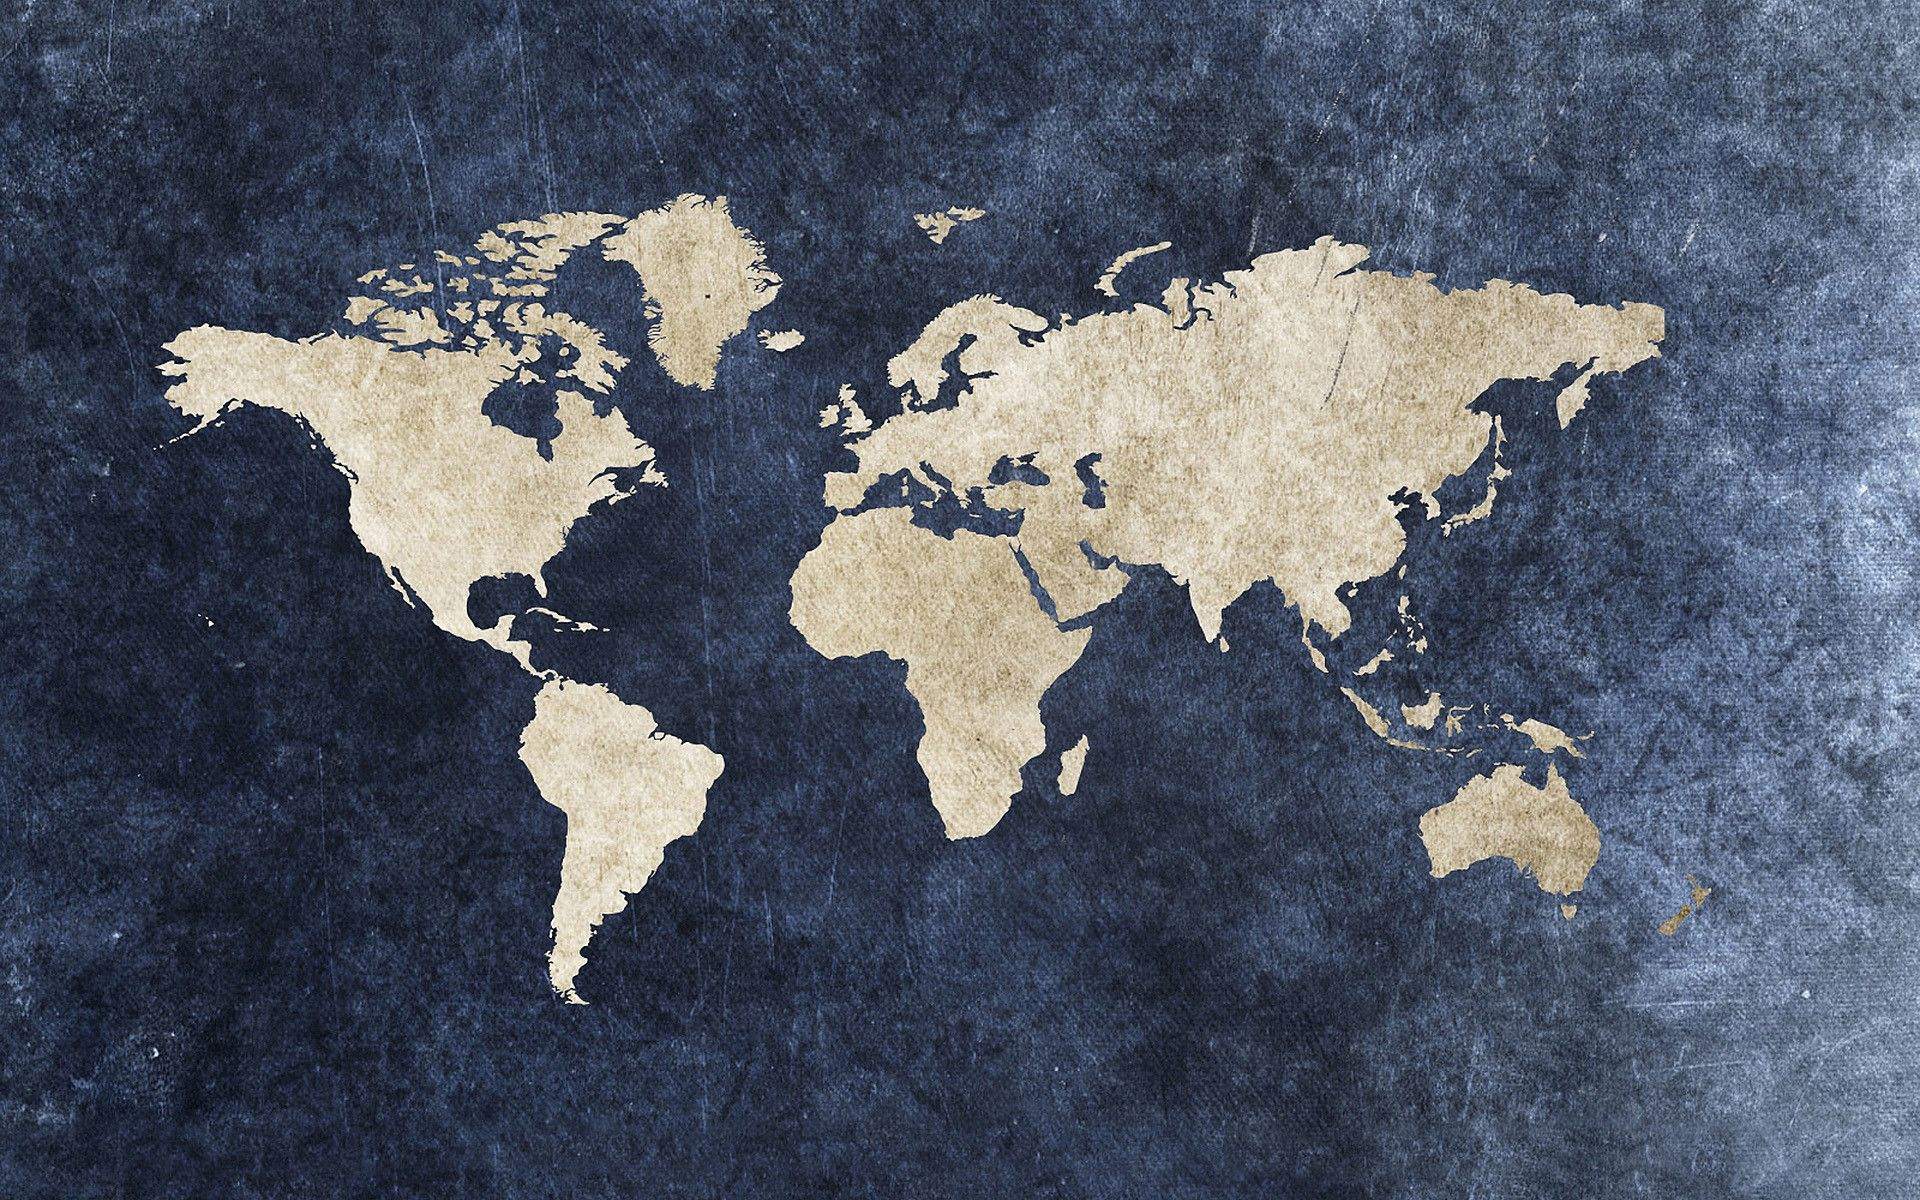 World Map Wallpapers - Full HD wallpaper search | Decoration ...